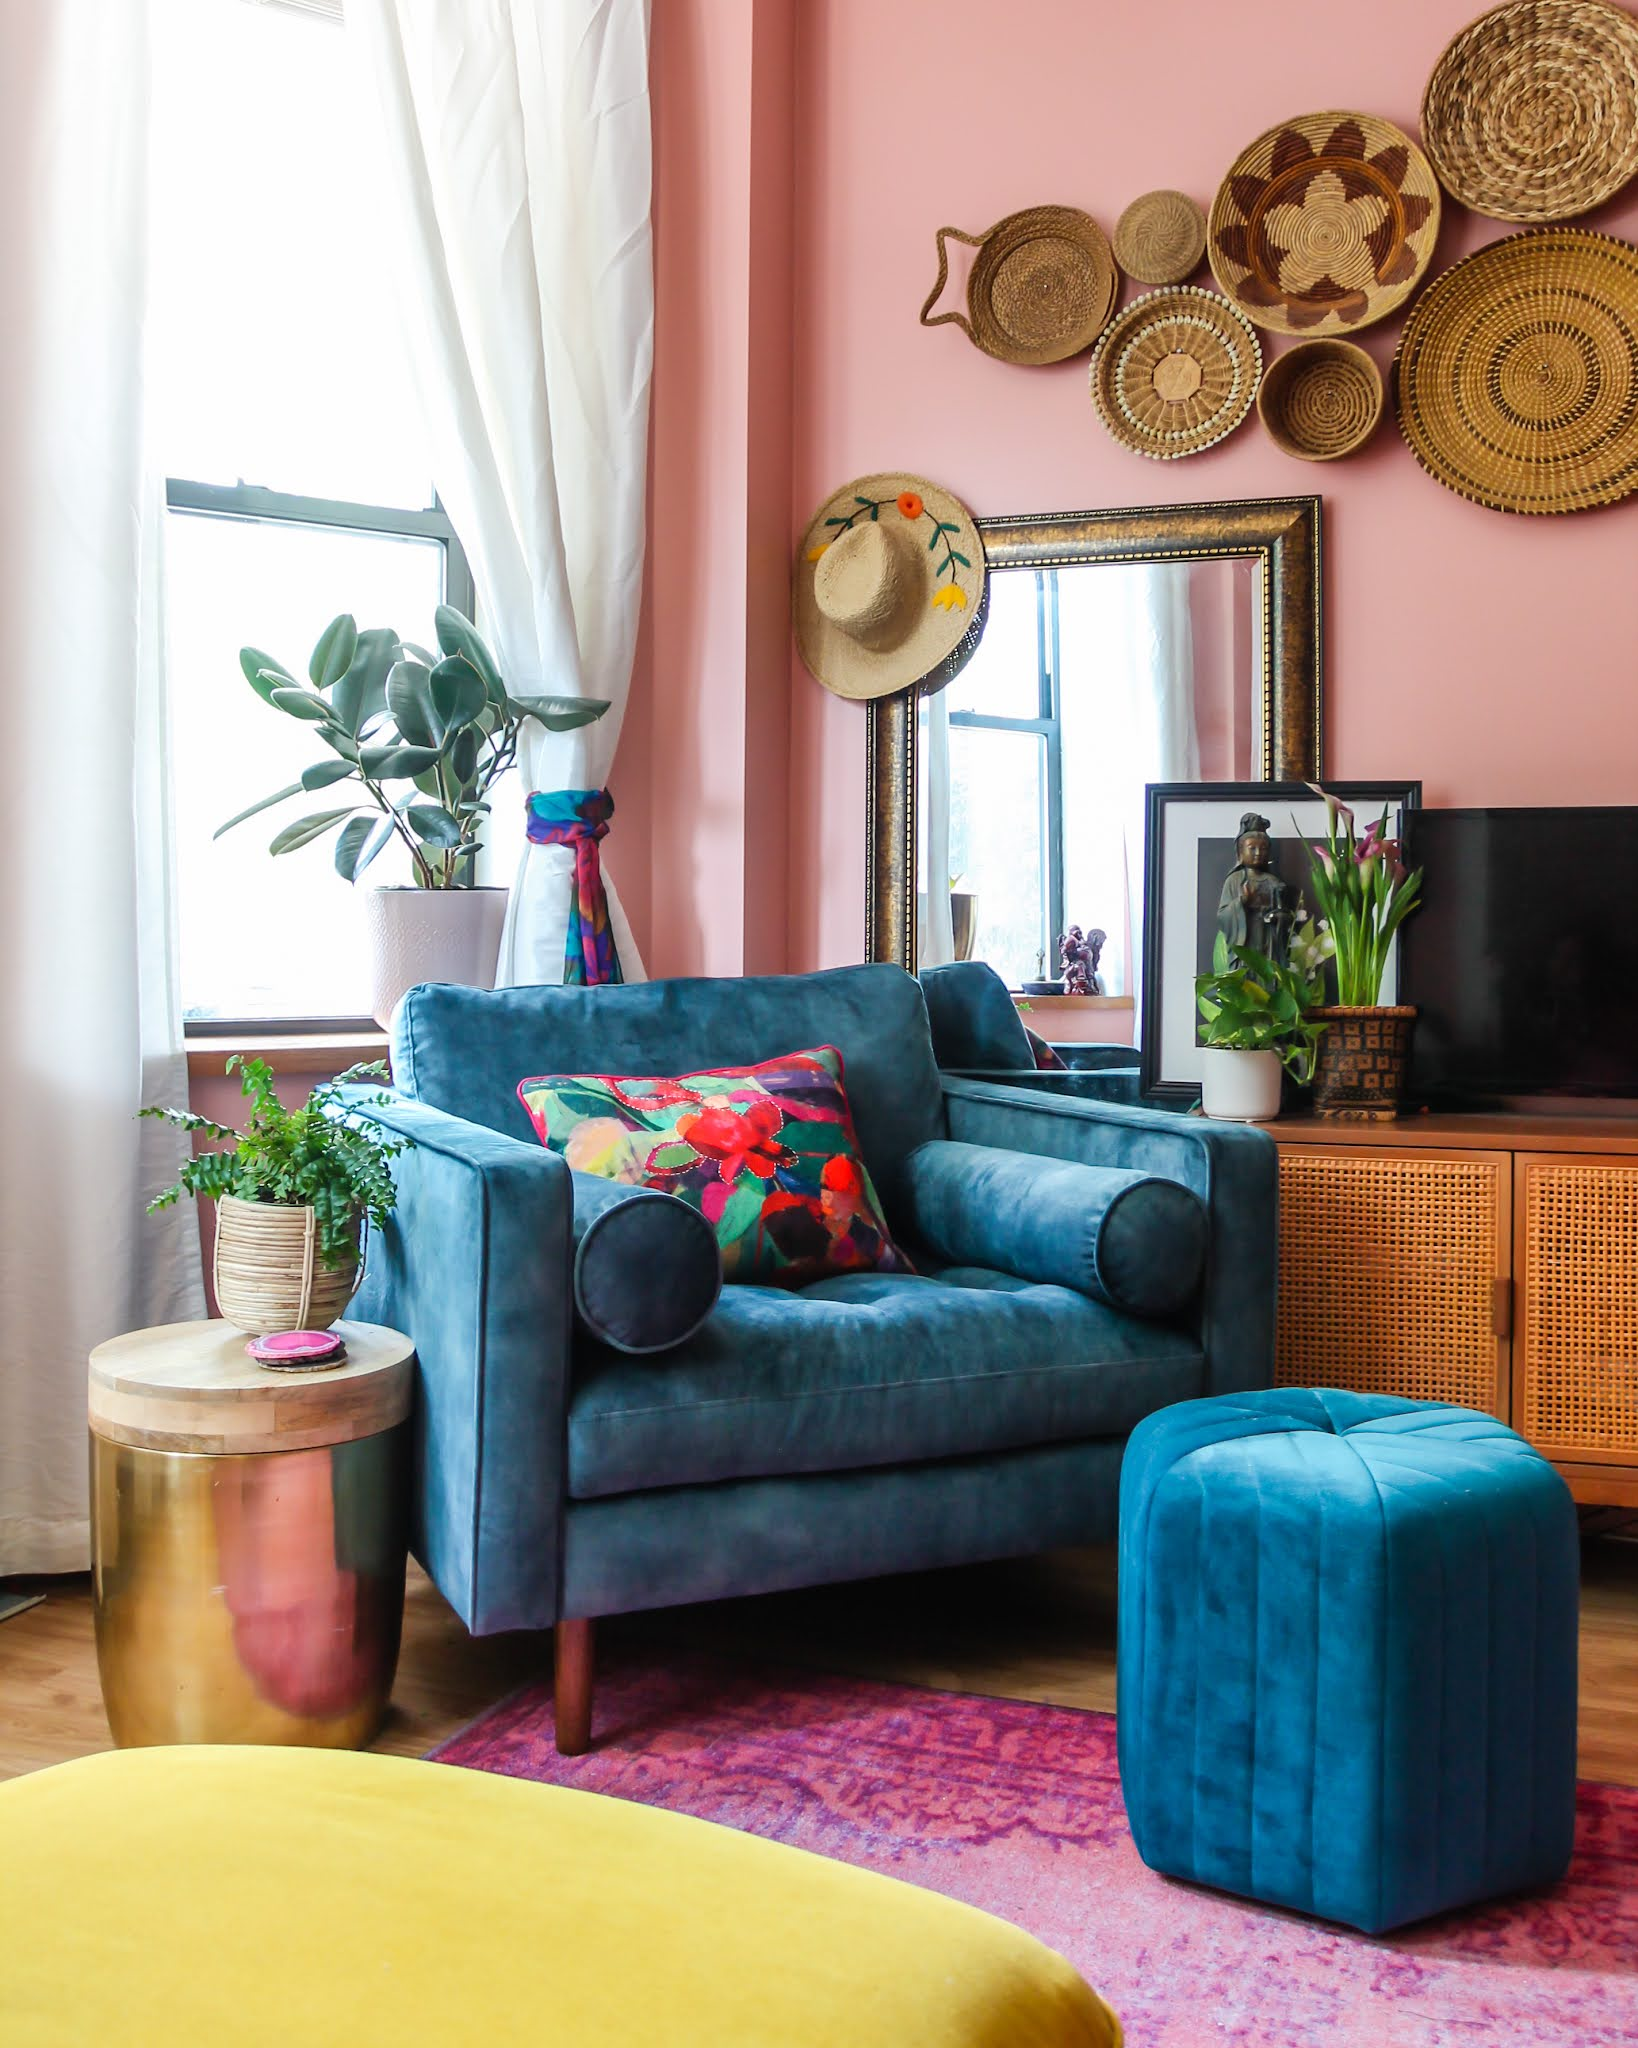 blue velvet chair // colorful homes // pink living room //reading nook ideas // home decor // maximalist // NYC apartments // colorful maximalist // small space homes // living room decor Ideas // colorful living room // pink and blue living room // basket wall